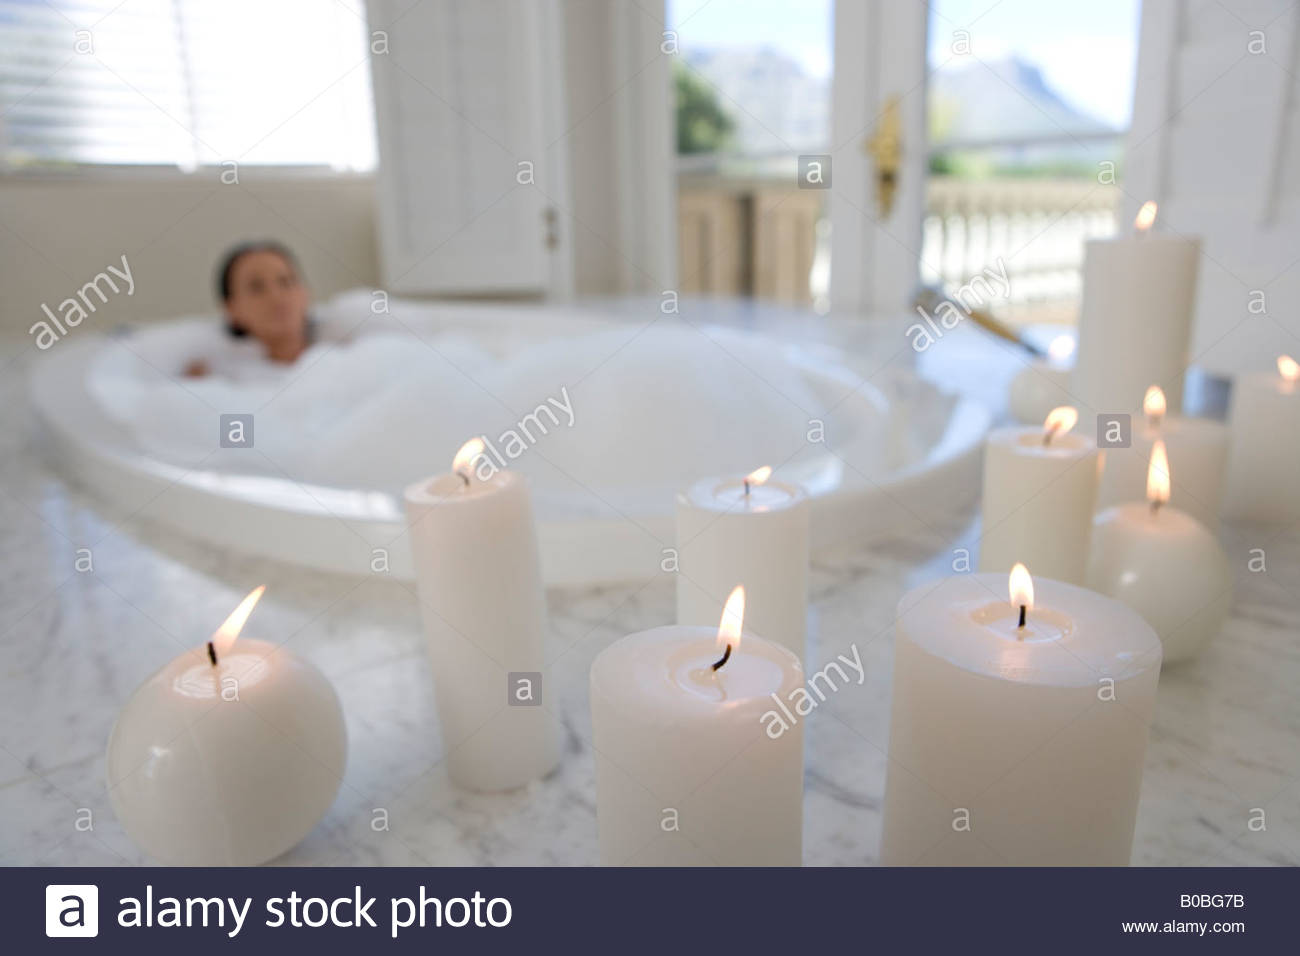 Young woman in bubble bath, illuminated candles in foreground - Stock Image